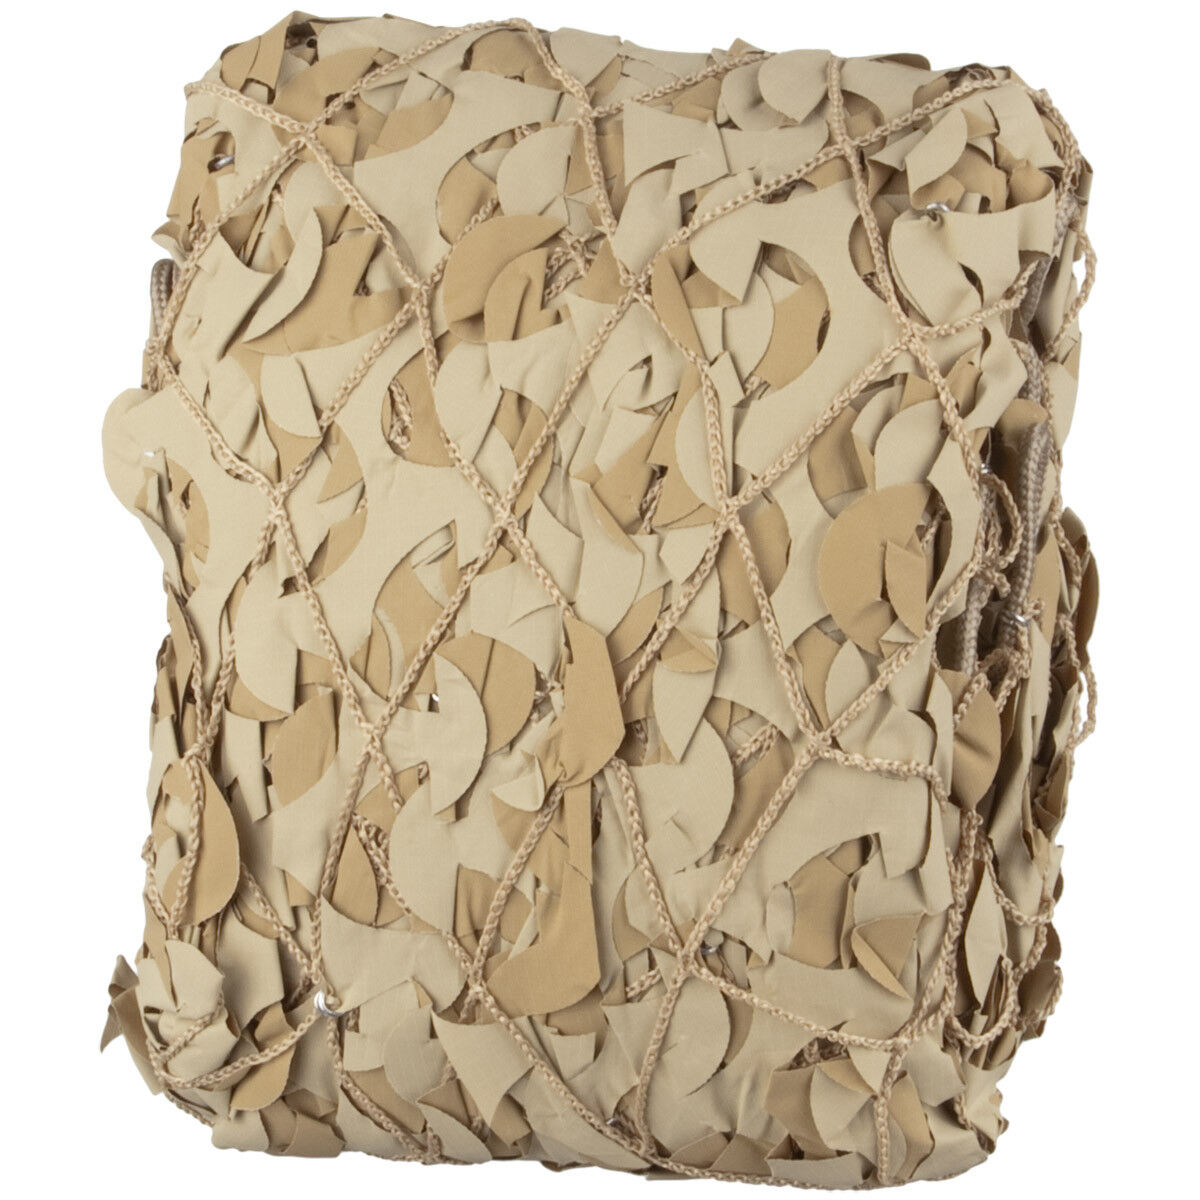 Camouflage Camosystems Chasse Camouflage Army Camo Filet Écran Blind 6X3M Désert